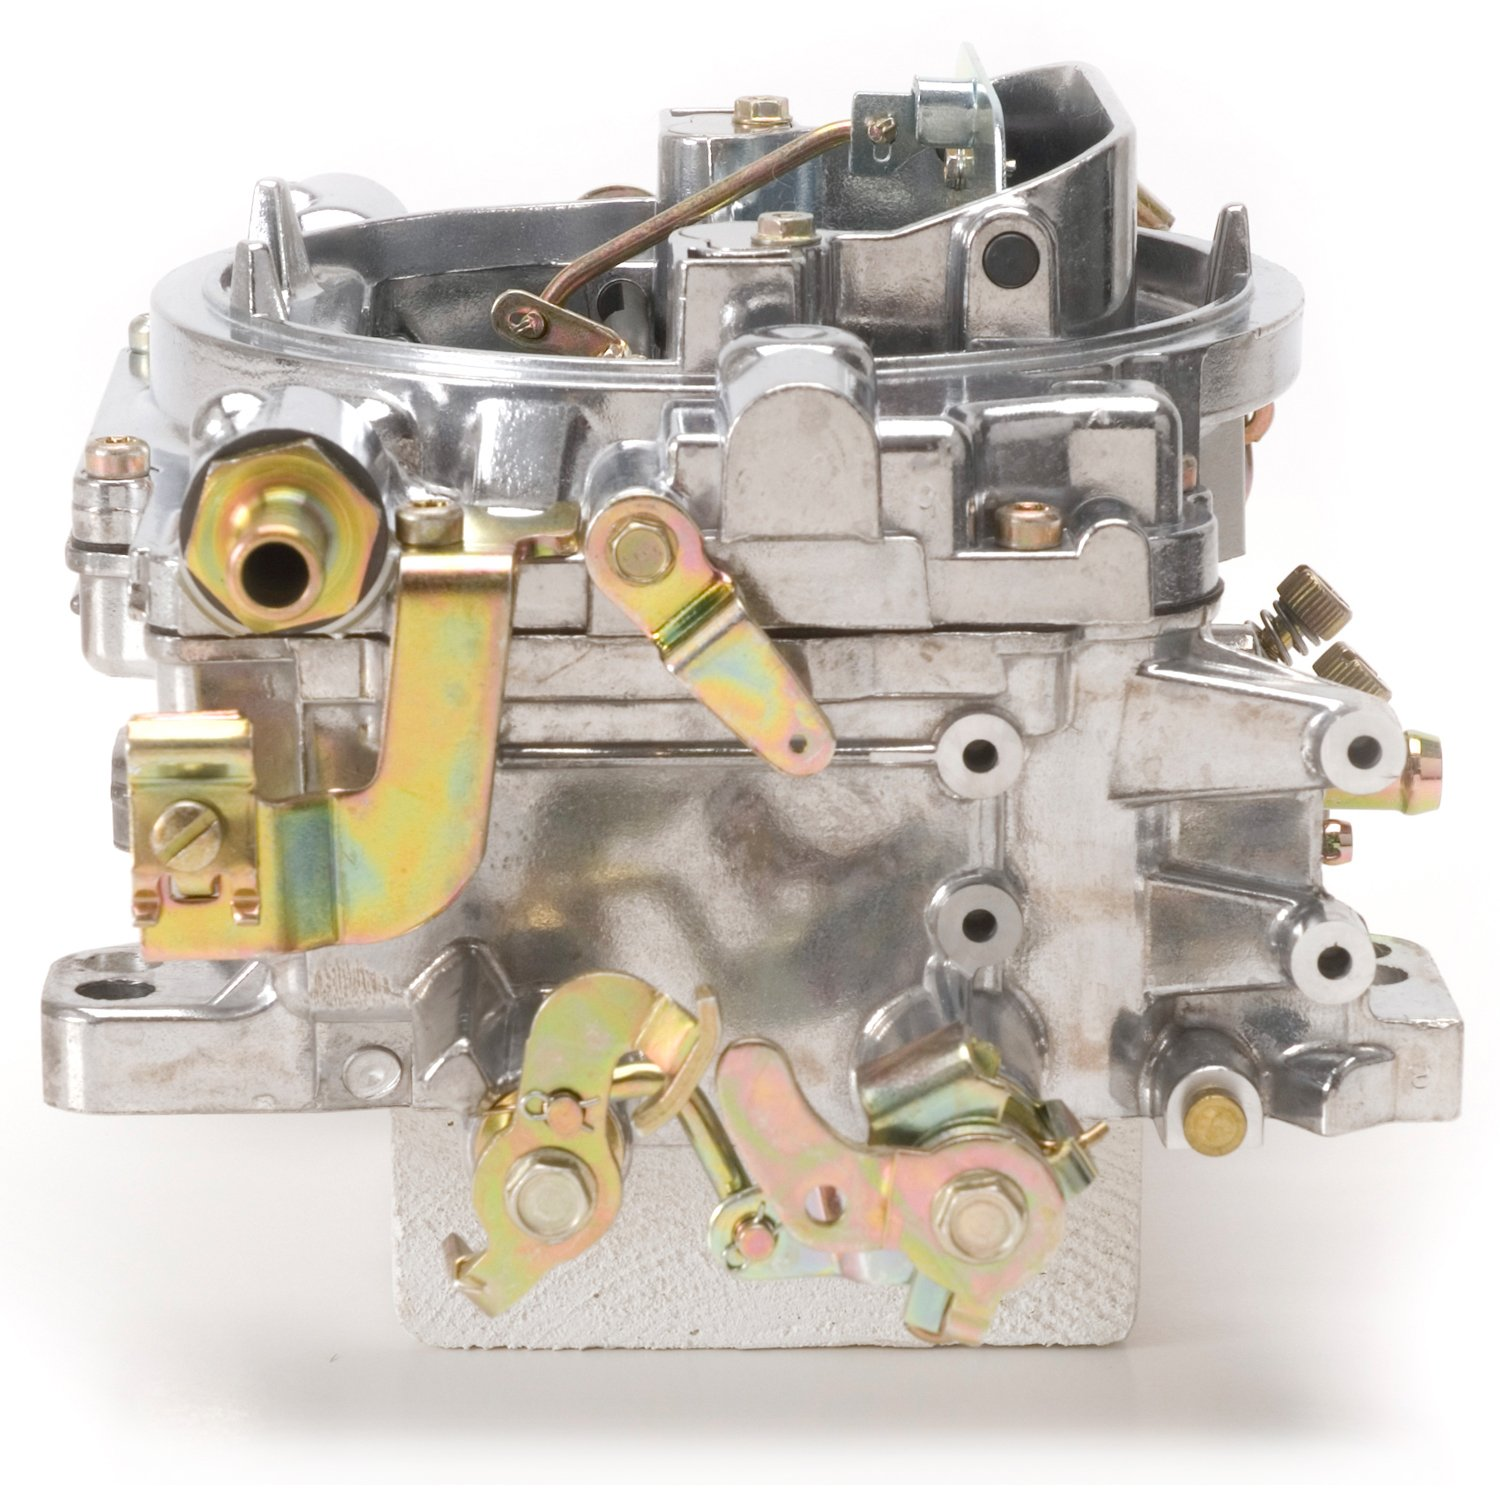 Edelbrock 1405 Performer 600 CFM Square Bore 4-Barrel Air Valve Secondary Manual Choke New Carburetor by Edelbrock